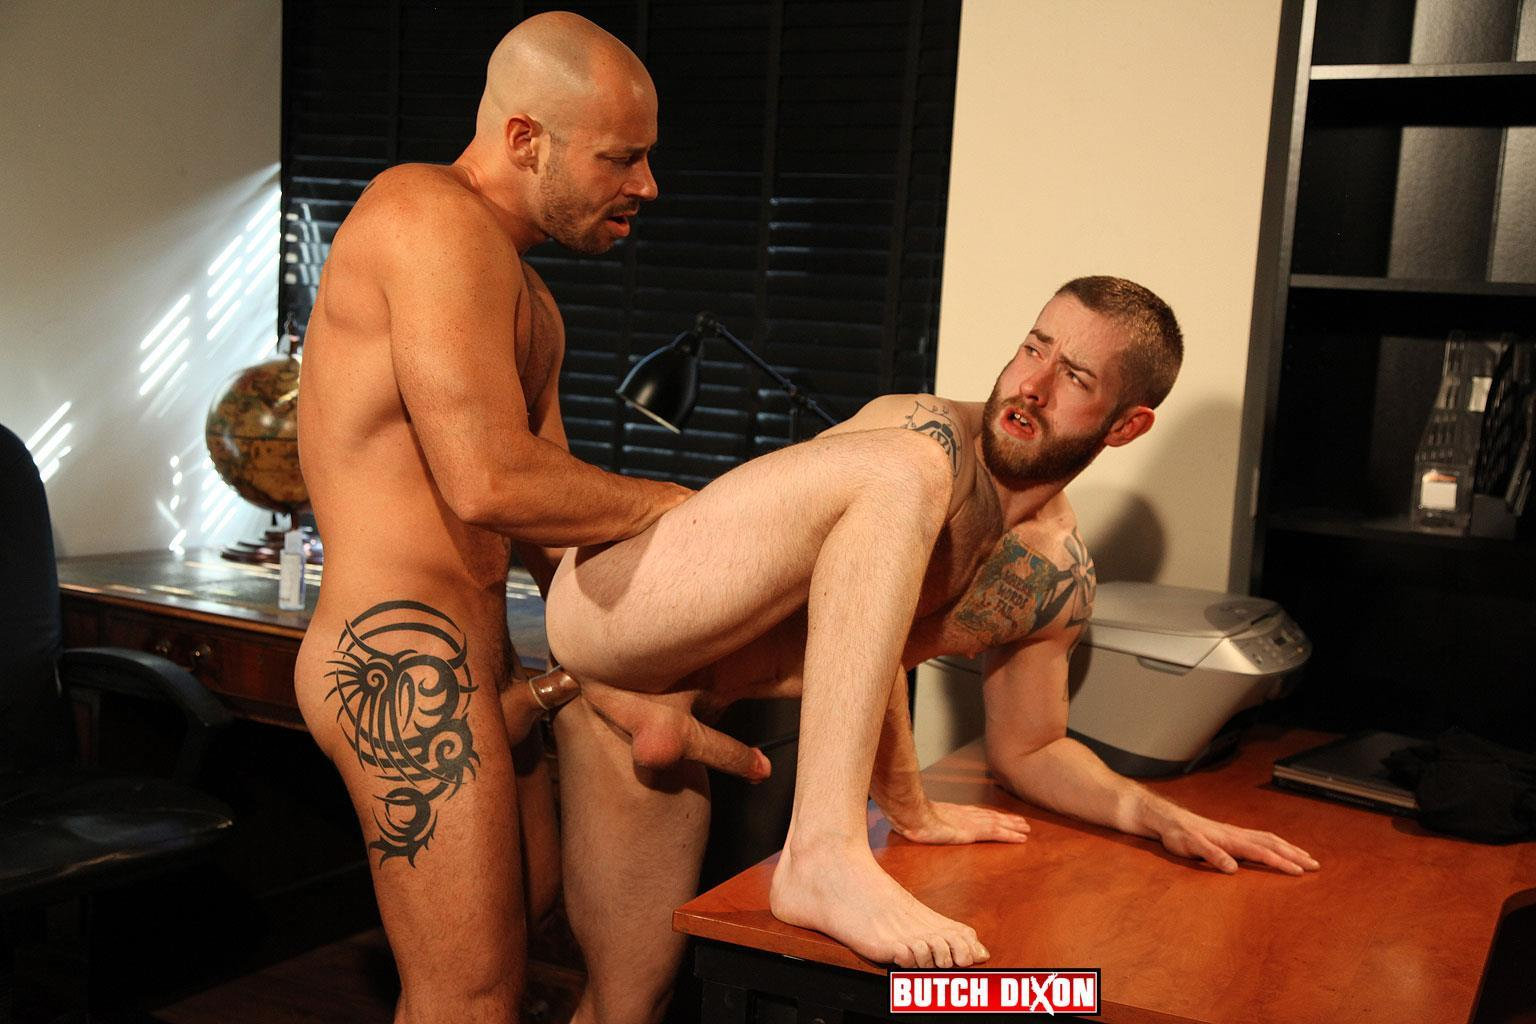 Butch-Dixon-Alfie-Stone-and-Bruno-Fox-Big-Cock-Masculine-Gays-Fucking-Amateur-Gay-Porn-12 Freaky Amateur Hairy Masculine Men Fucking With Thick Cocks